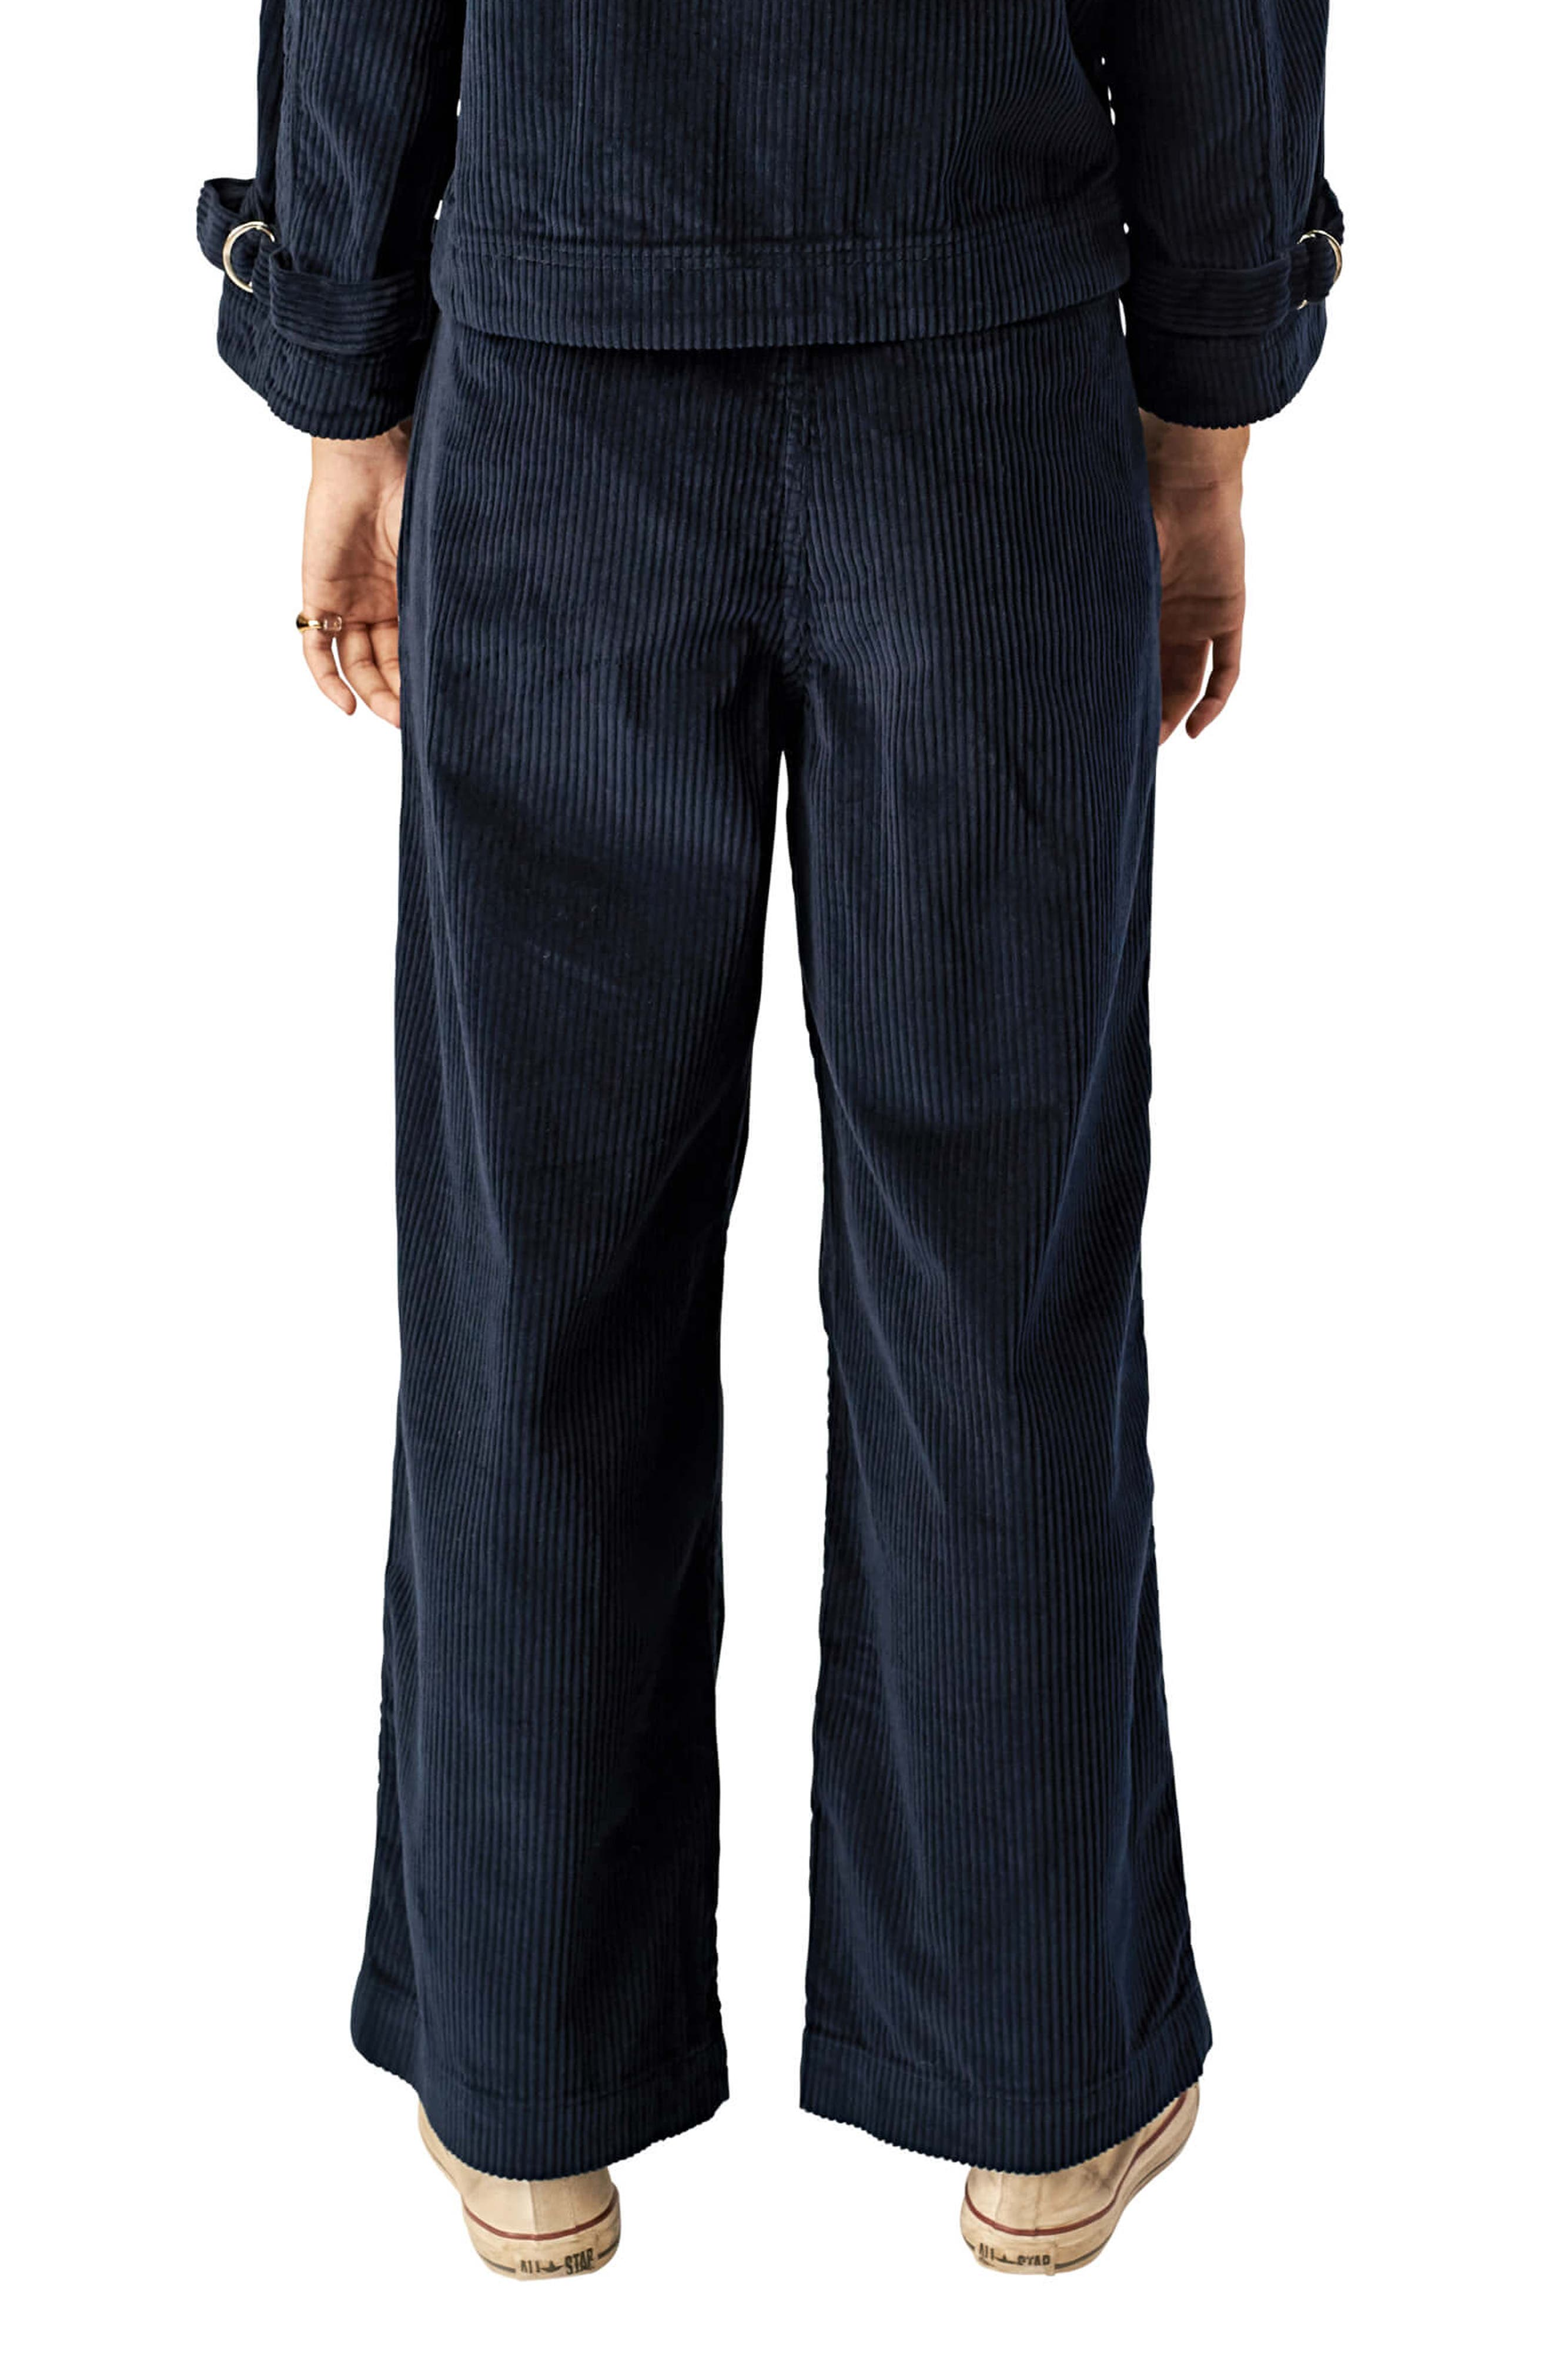 STONE ROW,                             Cut the Cord Corduroy Ankle Wide Leg Pants,                             Alternate thumbnail 2, color,                             SEA NAVY